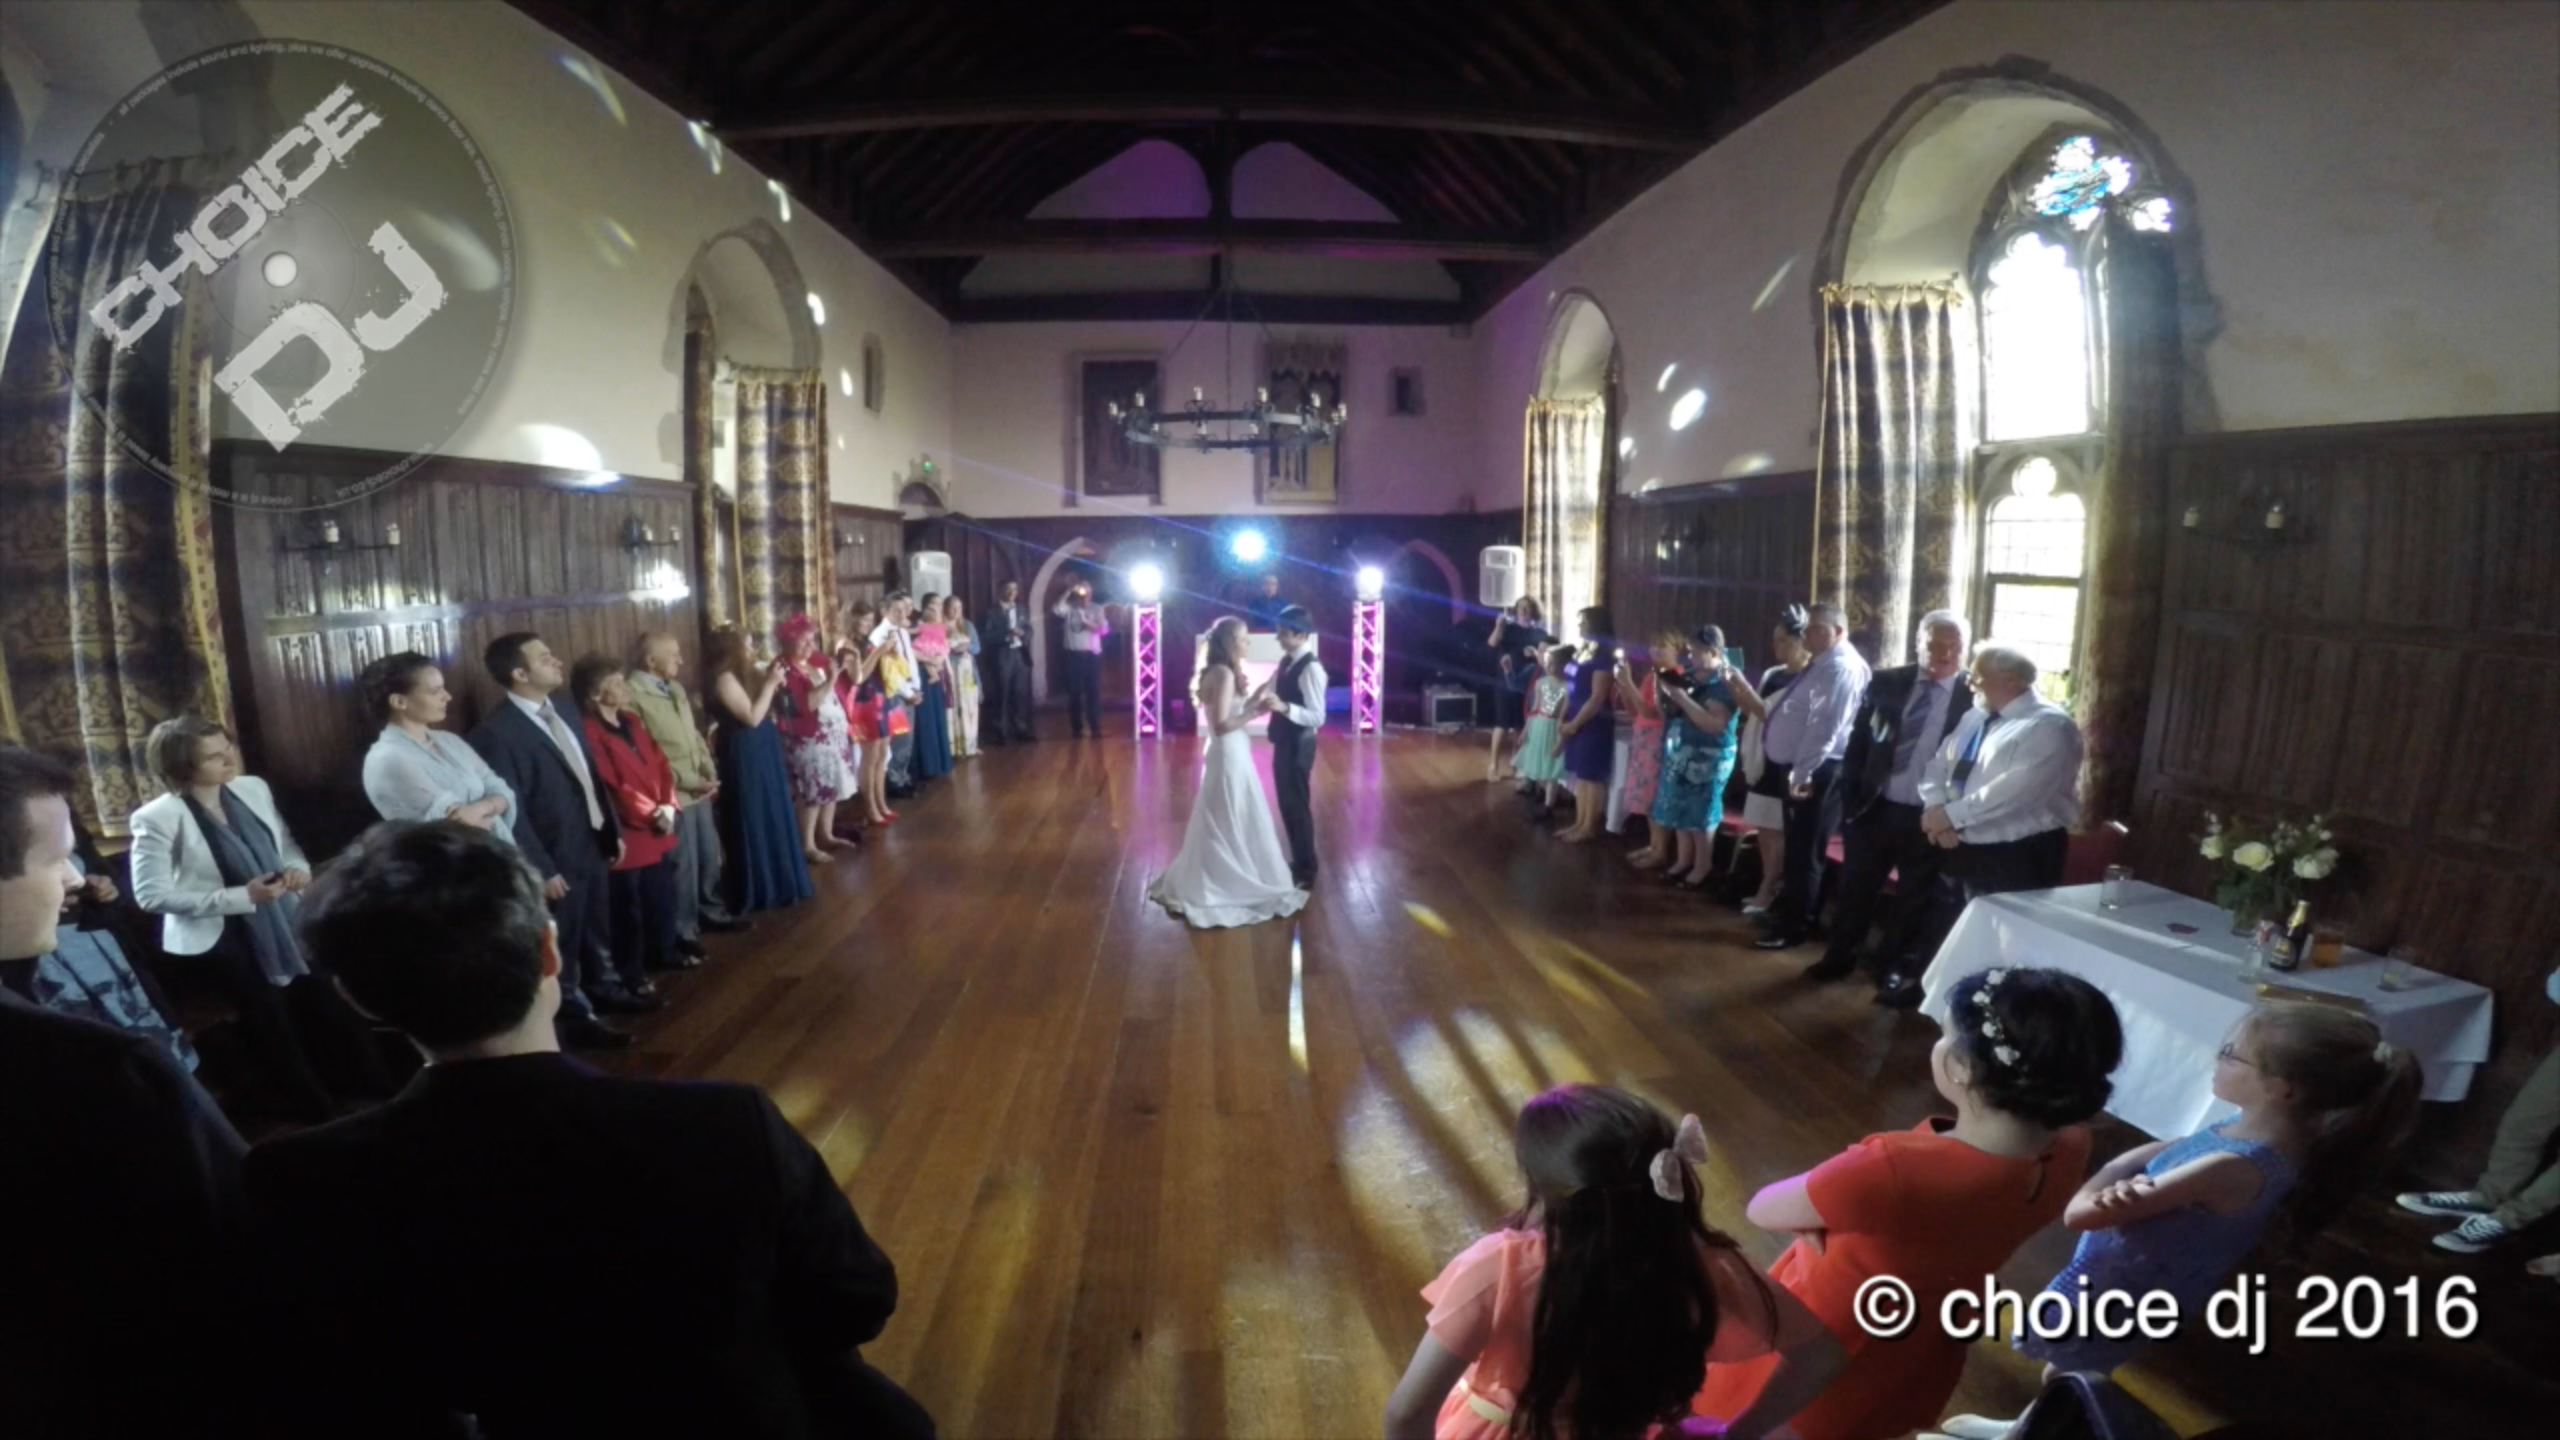 Lympne Castle, Kent – Emily & Alex 6/6/2016